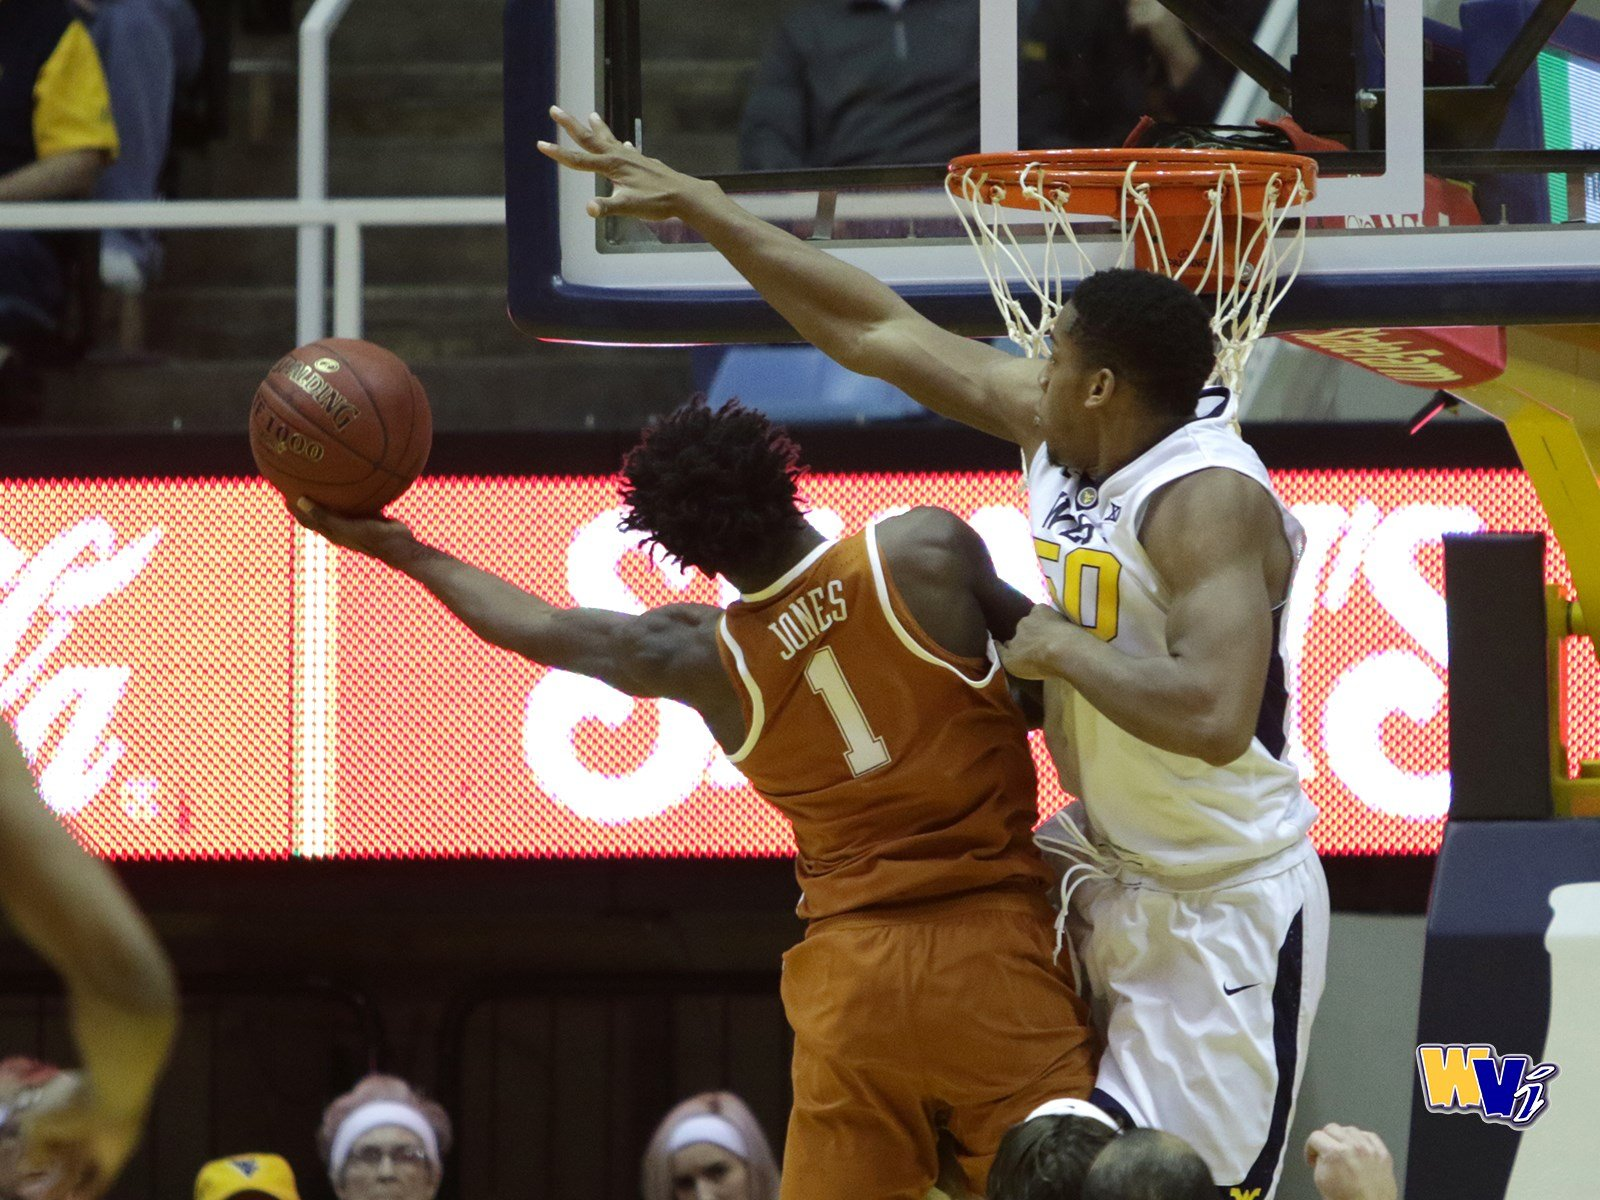 Sagaba Konate blocks a shot in WVU's 77-62 win over Texas on February 20.